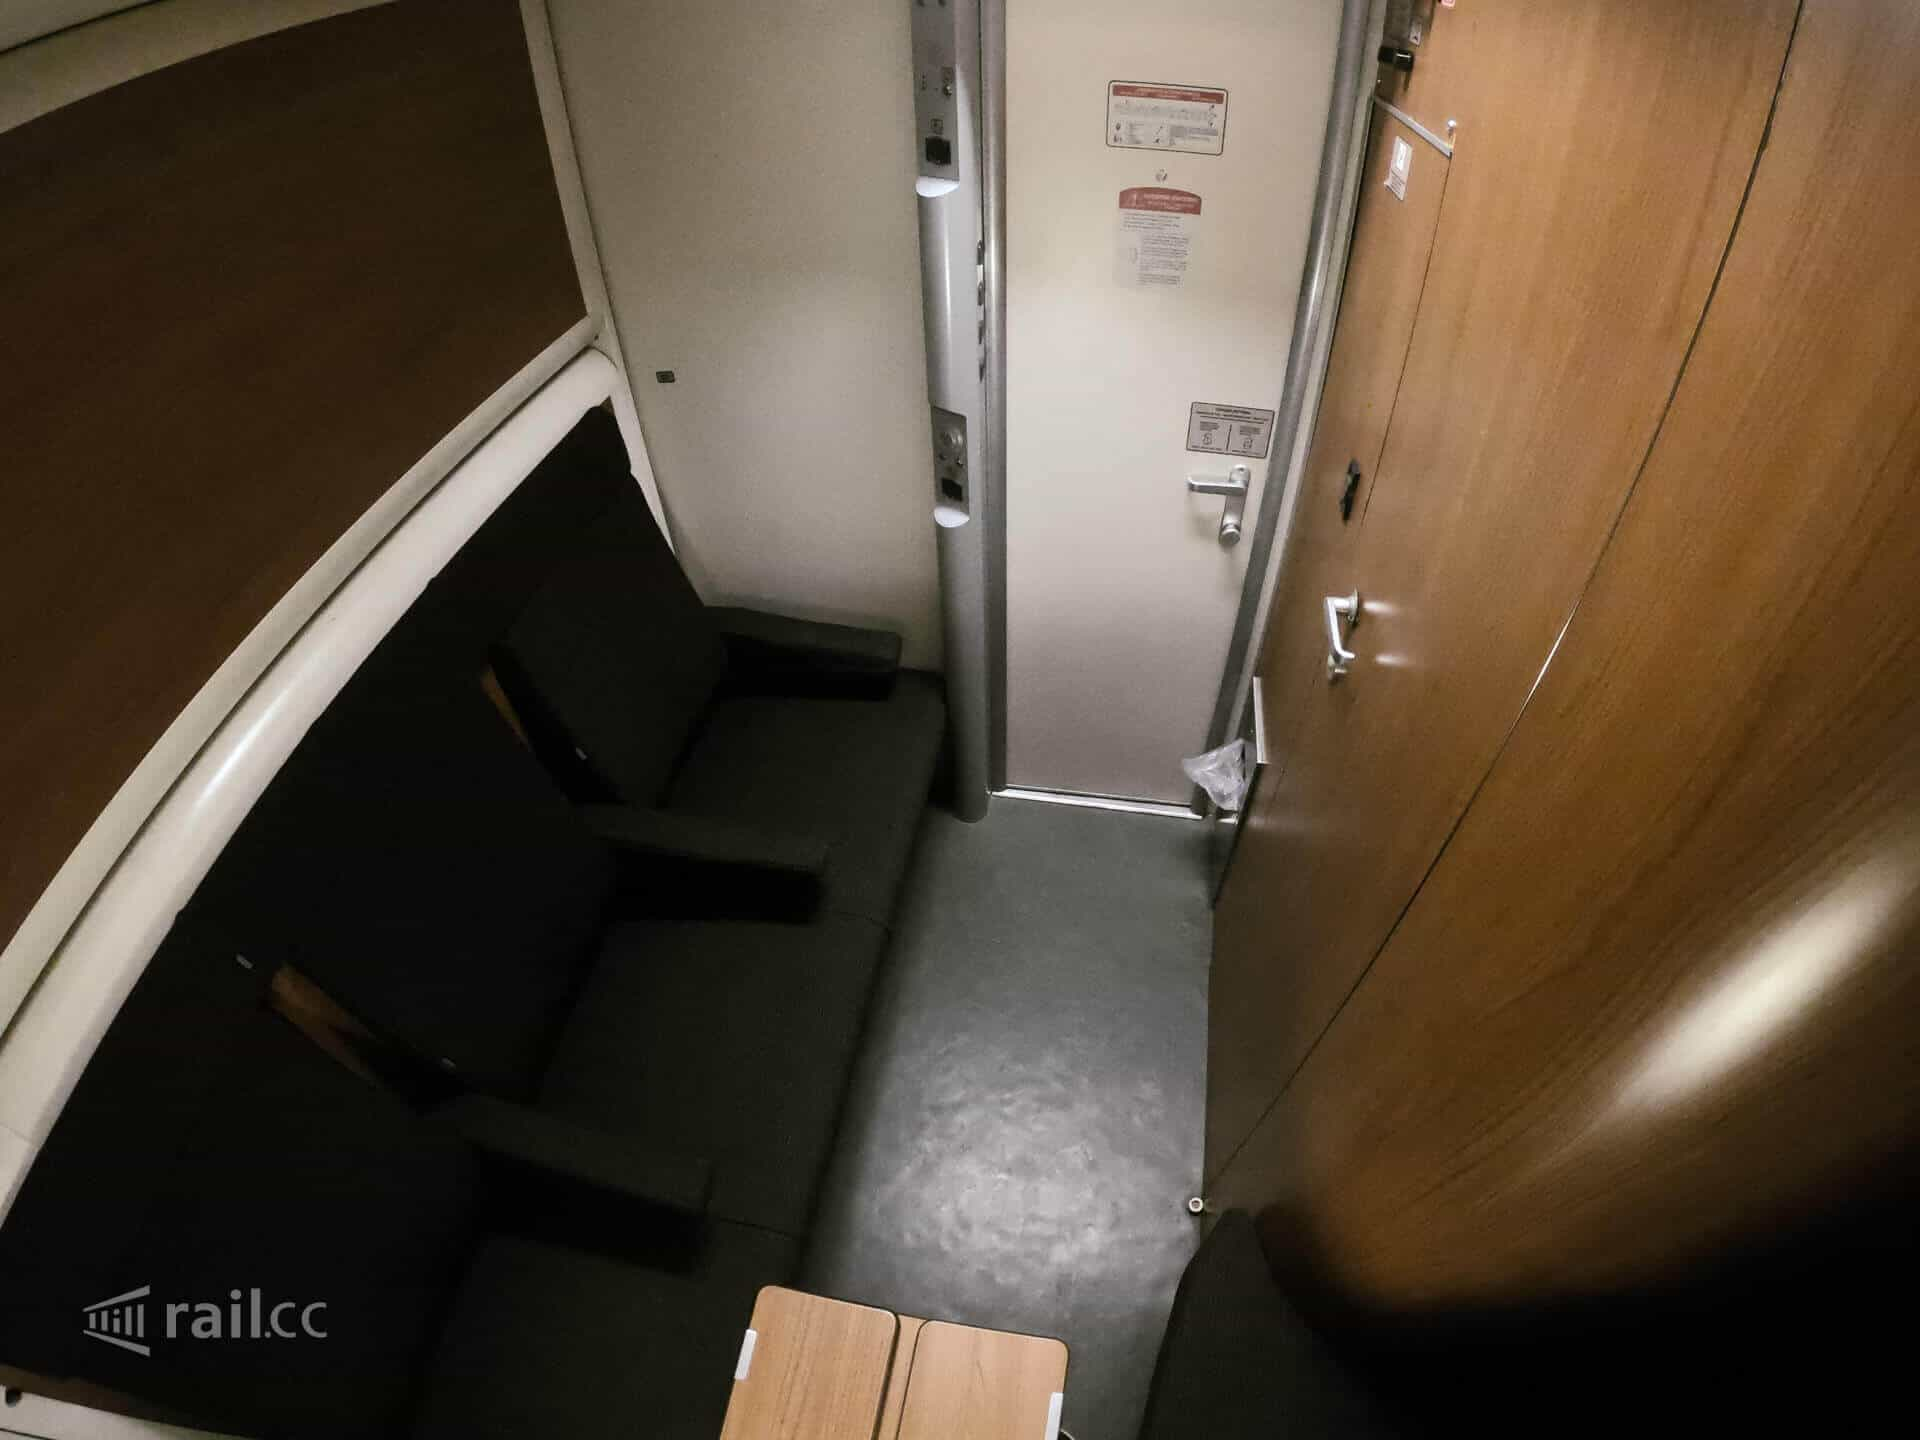 Sleeper night train from Paris via Milan to Venice. Travel overnight from France to Italy.